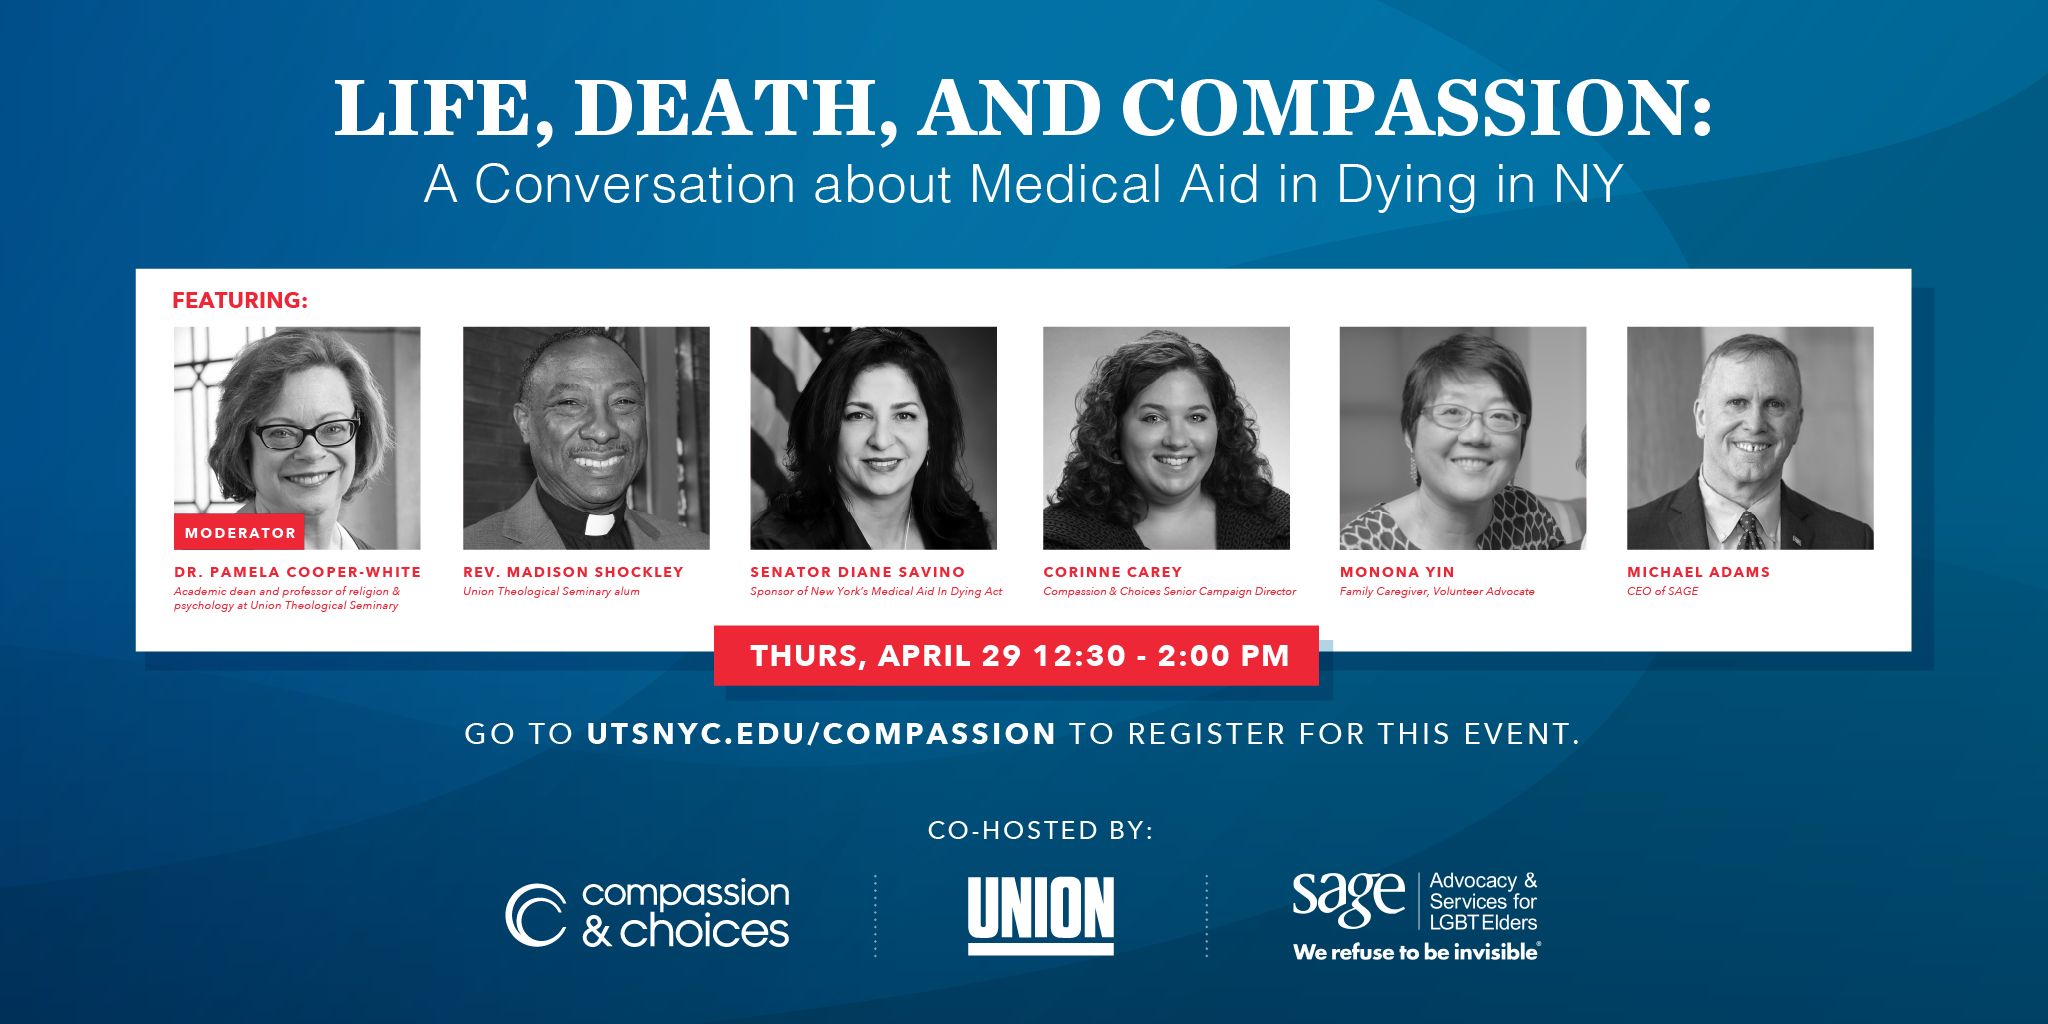 Life, Death, and Compassion: A Conversation about Medical Aid in Dying in New York @ Zoom Webinar